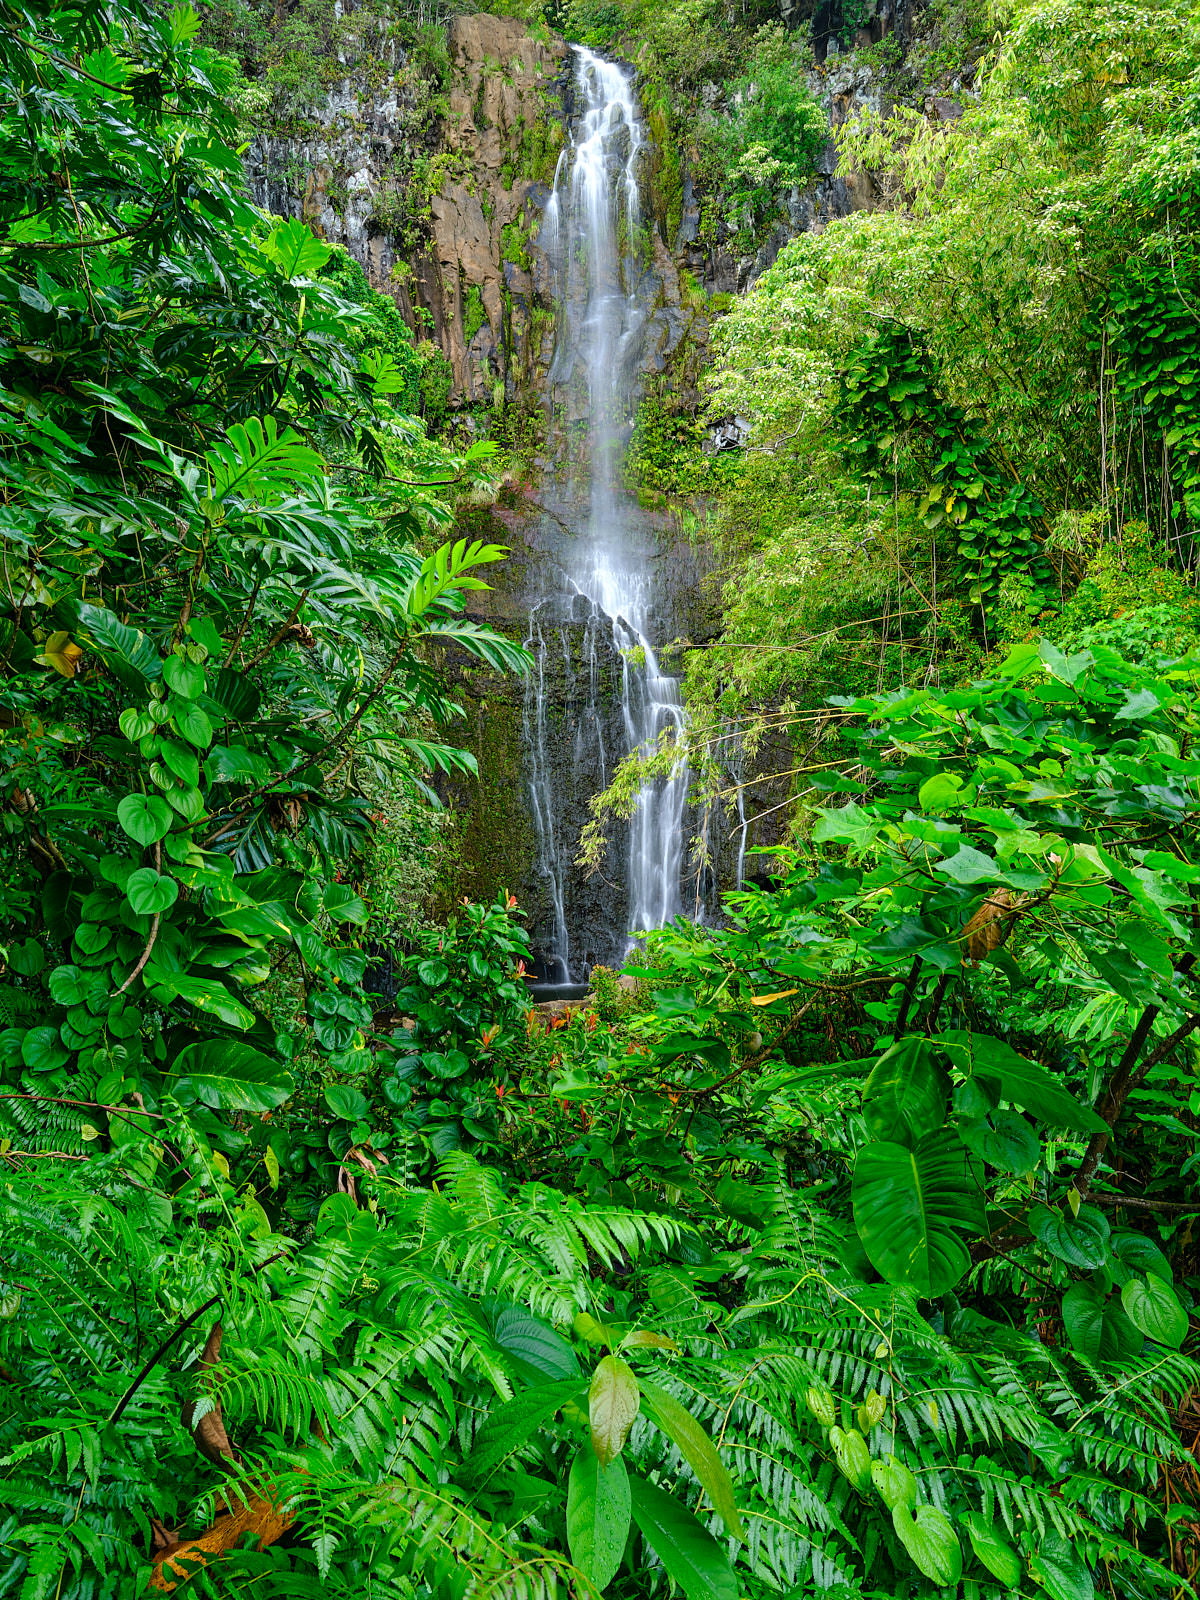 vertical image of Wailua Falls surrounded by lush green foliage near Hana on the island of Maui Hawaii